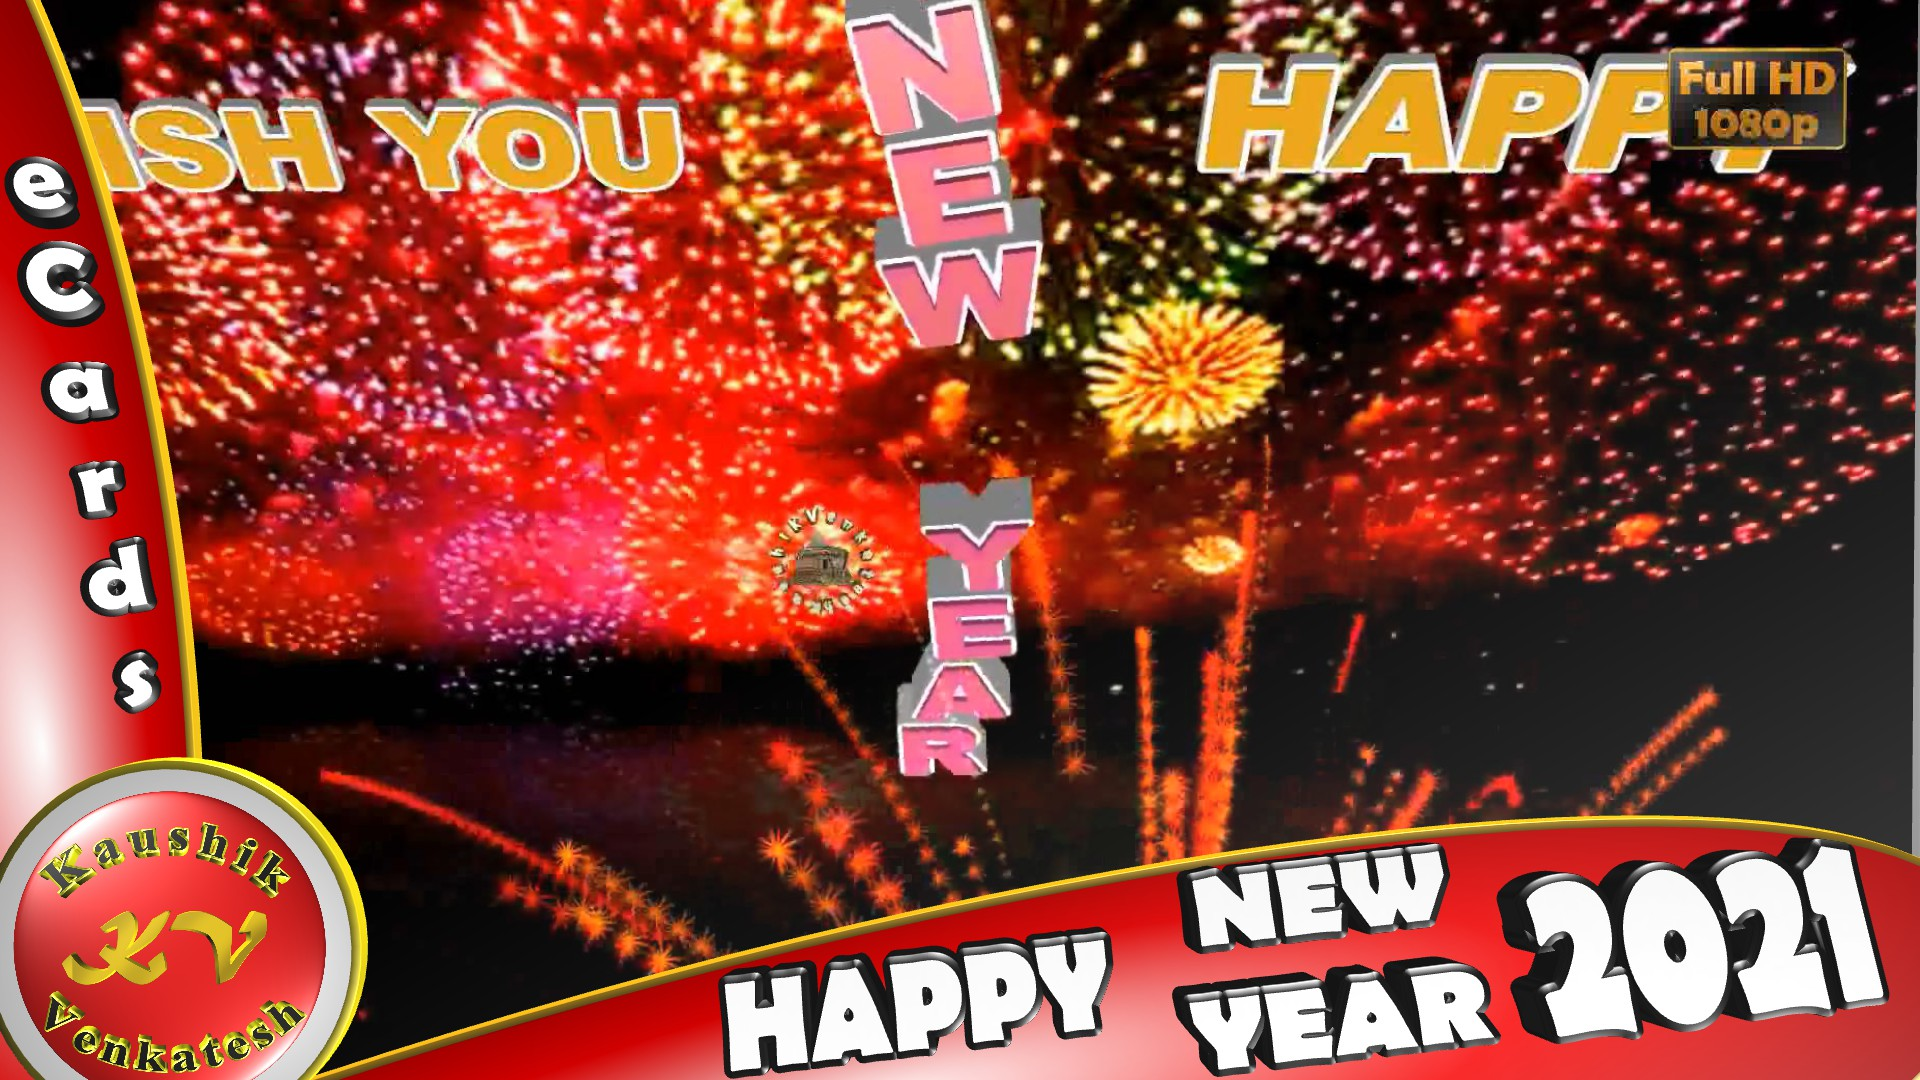 Greetings for Happy New Year